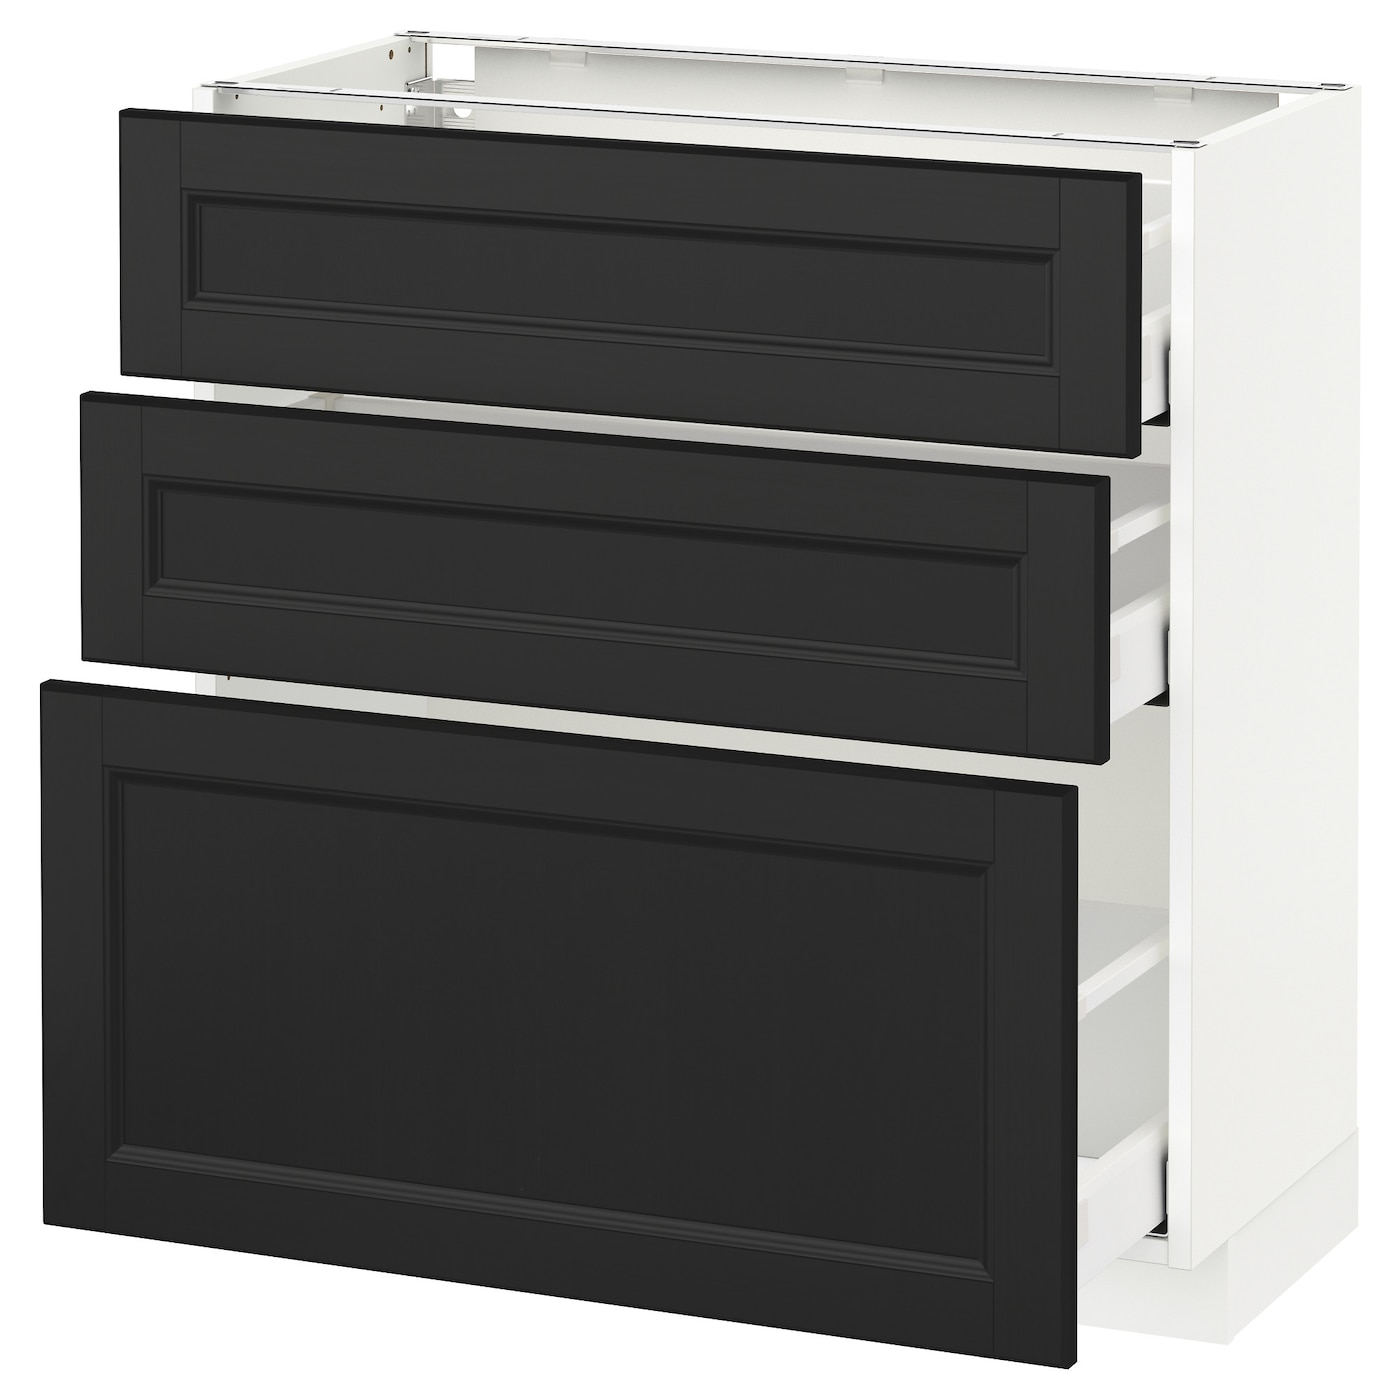 METOD/MAXIMERA Base Cabinet With 3 Drawers White/laxarby Black-brown 80x37 Cm